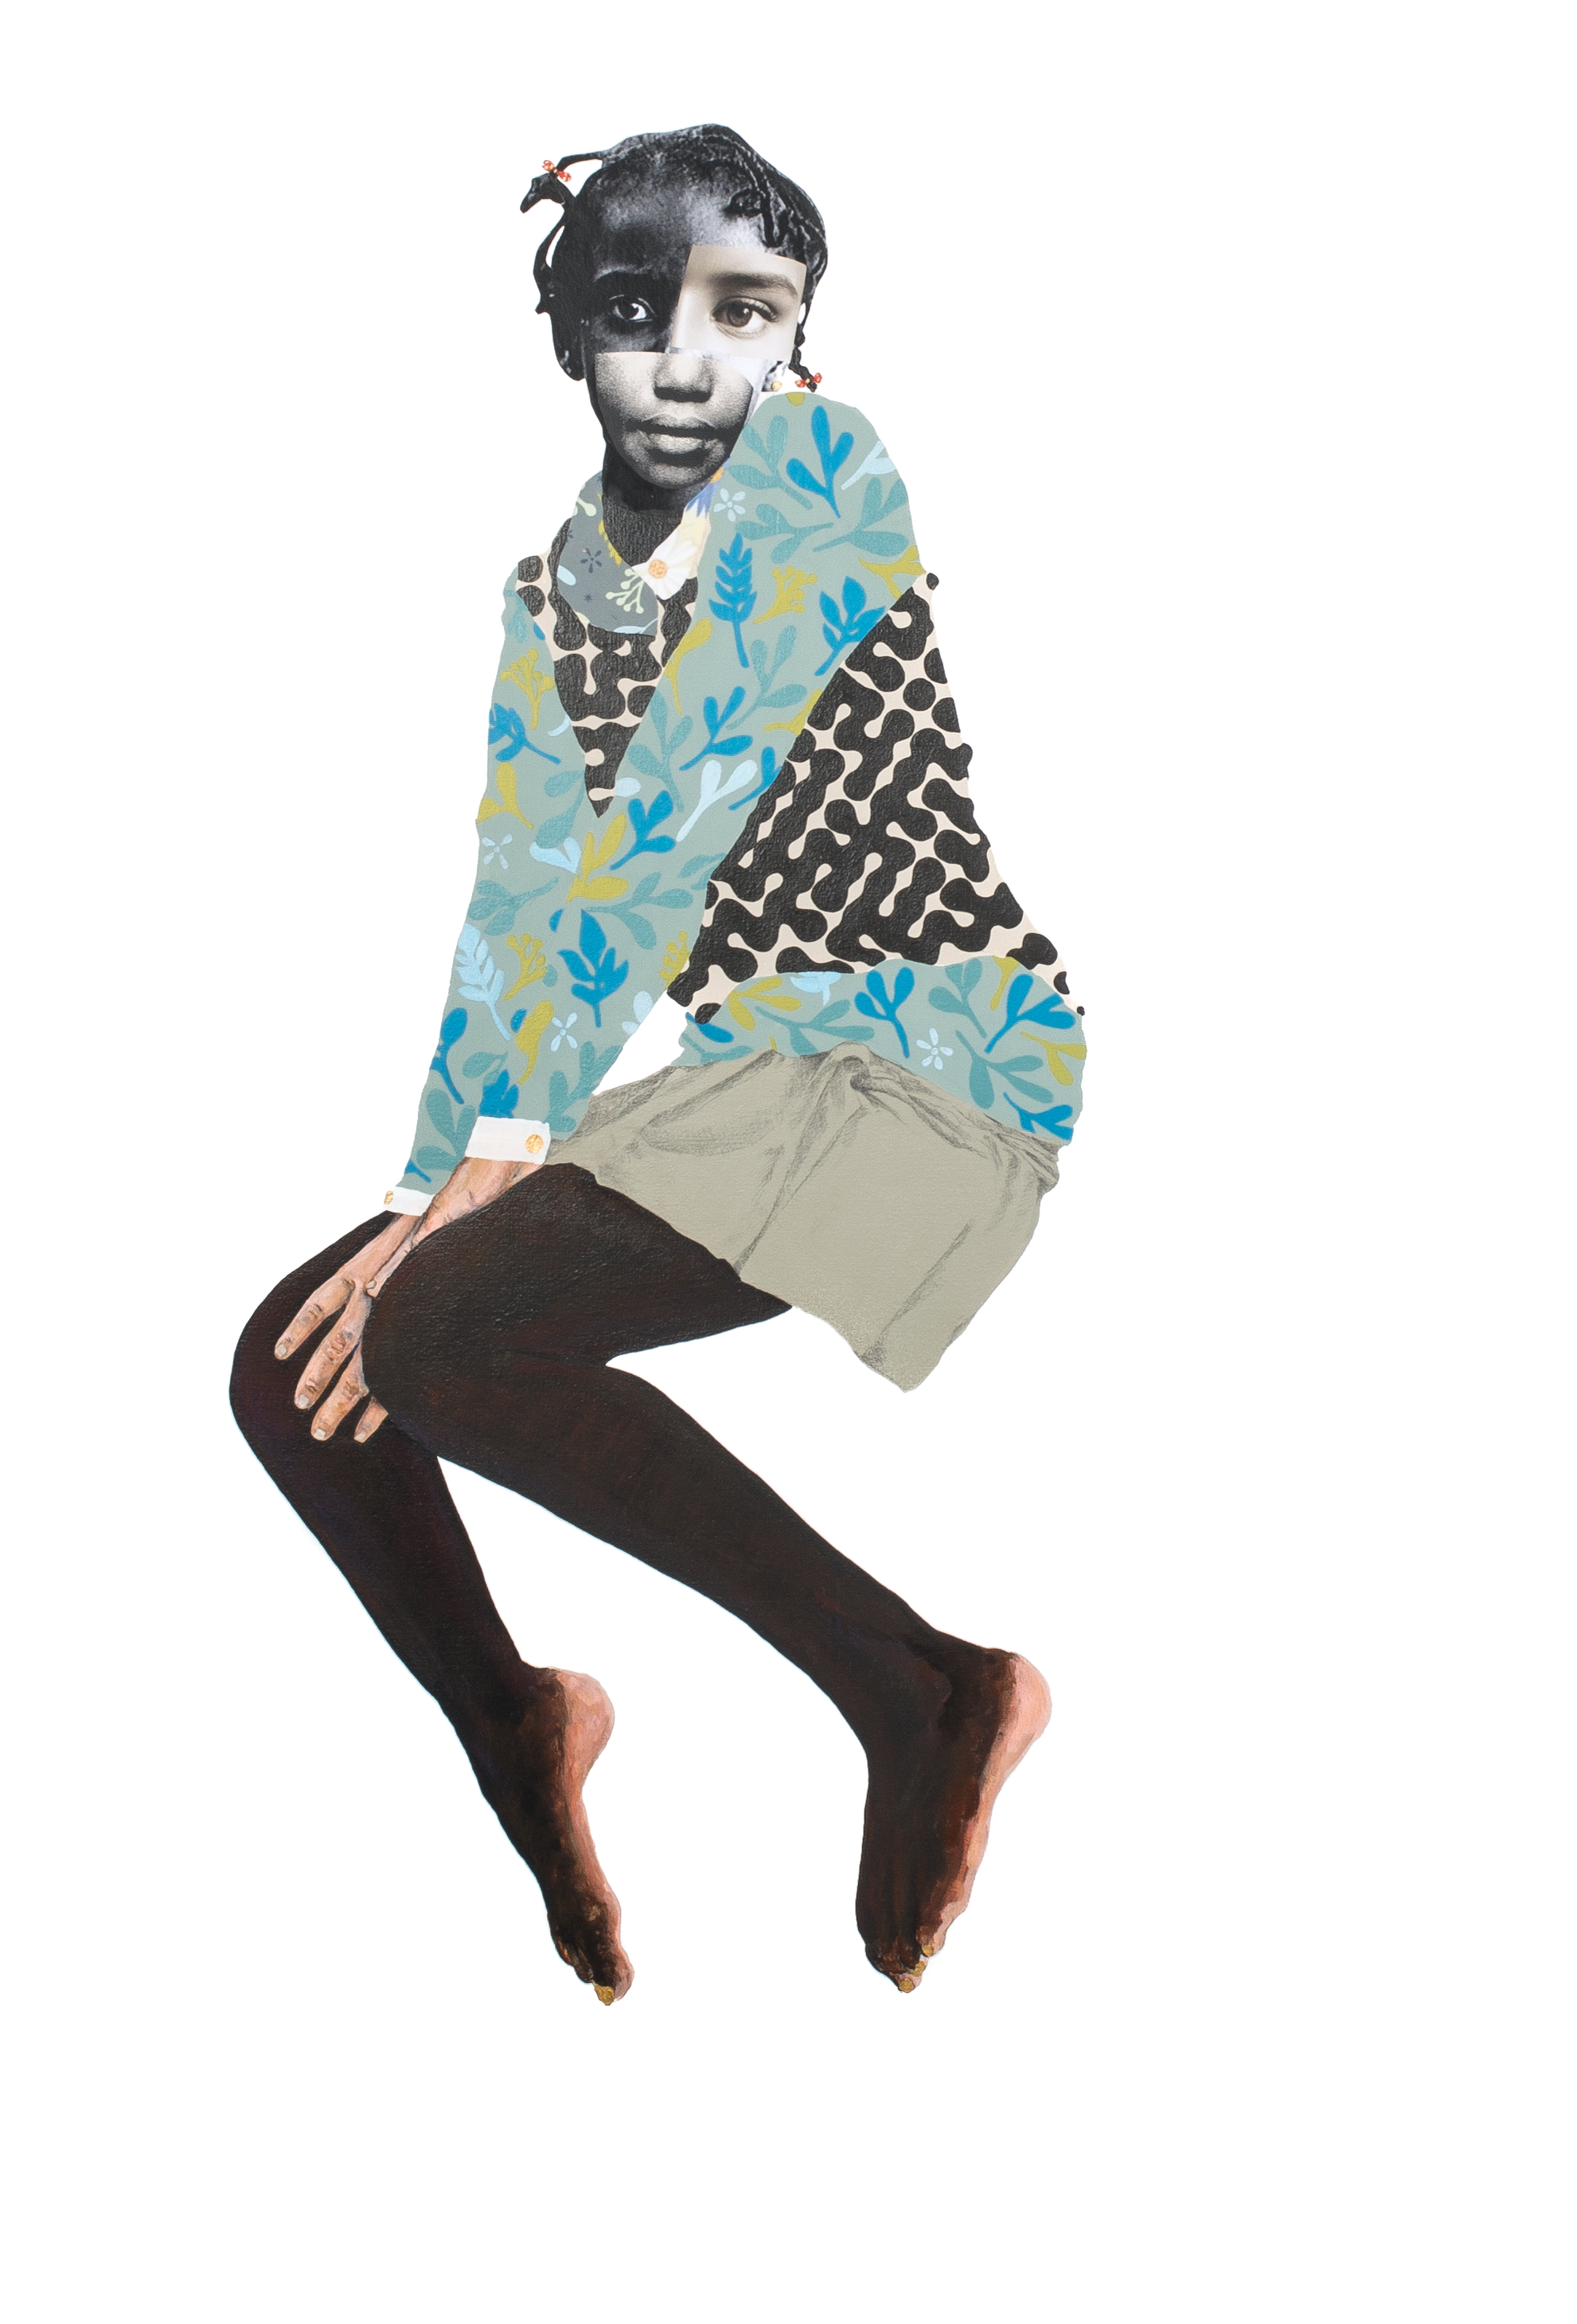 - Deborah Roberts (b. 1962, Austin, Texas) is a mixed media artist whose work challenges the notion of ideal beauty. Her work has been exhibited internationally across the U.S. and Europe. Roberts' work is in the collections of Whitney Museum of American Art, Brooklyn Museum, The Studio Museum in Harlem, LACMA, Block Museum of Art, Blanton Museum of Art, Spelman College Museum of Fine Art, Montclair Art Museum, and The Frances Young Tang Teaching Museum and Art Gallery. Roberts is the recipient of the Pollock-Krasner Foundation Grant (2016) and Ginsburg-Klaus Award Fellowship (2014). She received her MFA from Syracuse University, New York. She lives and works in Austin, Texas. Roberts is represented by Stephen Friedman Gallery, London.Image: My body, your rules, 2018. Mixed media collage on canvas.